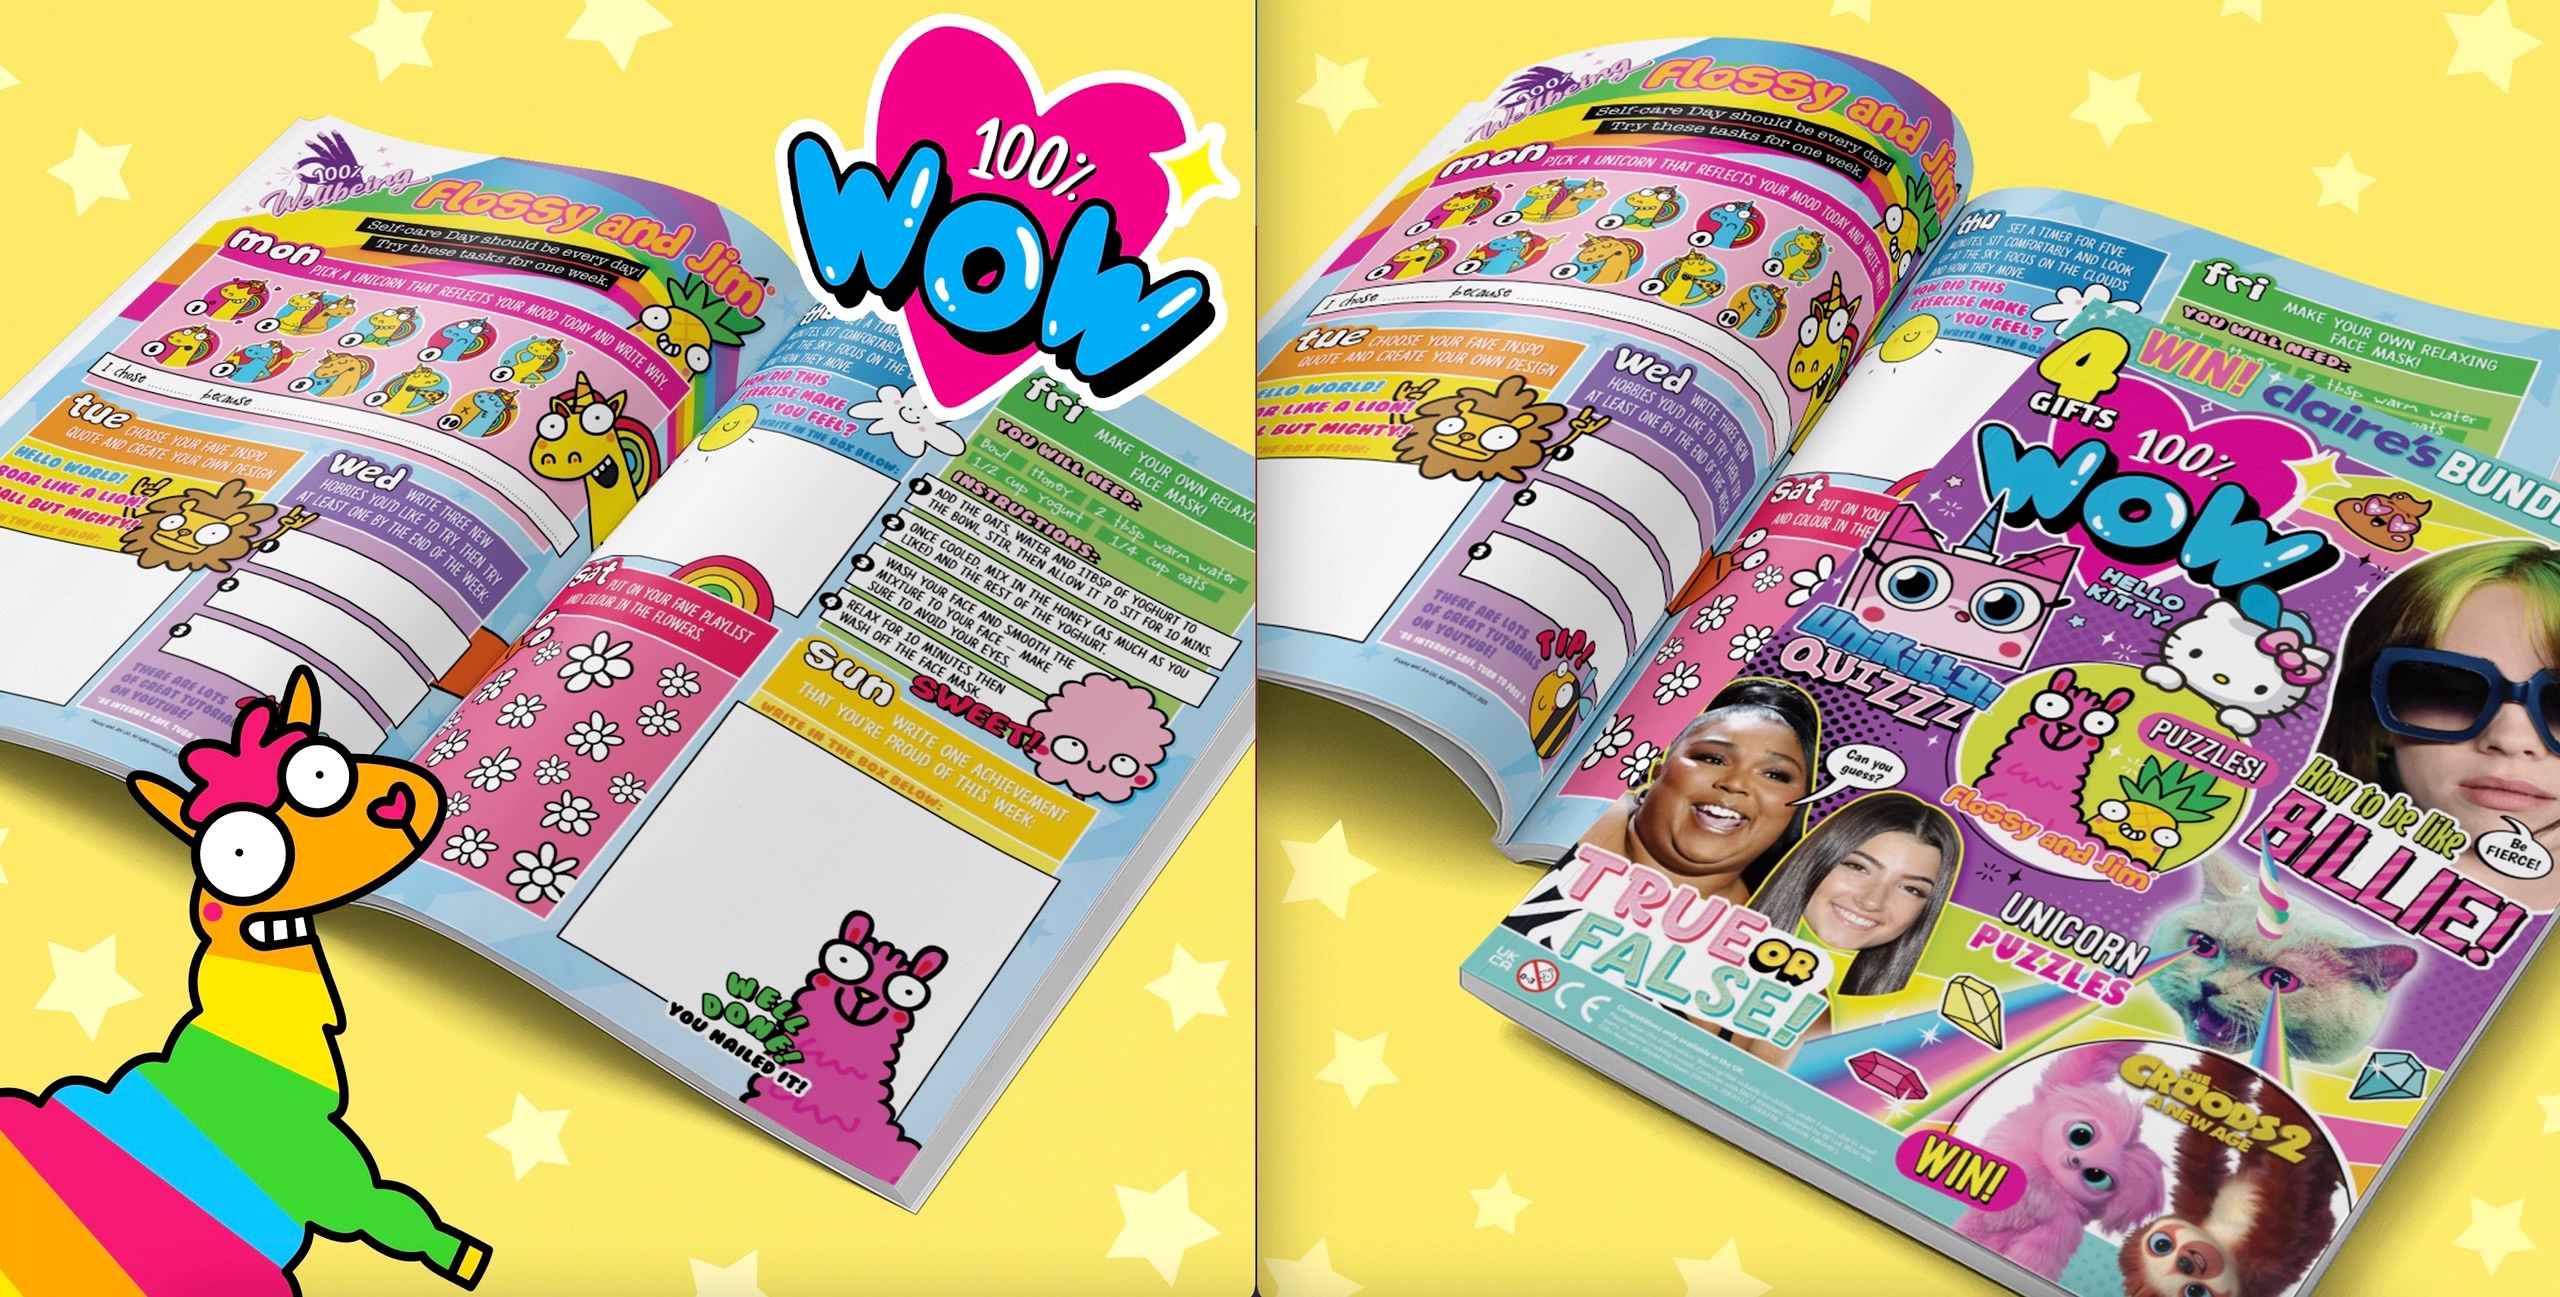 100% WOW magazine feature an inspiring Flossy and Jim double page spread focusing on self care